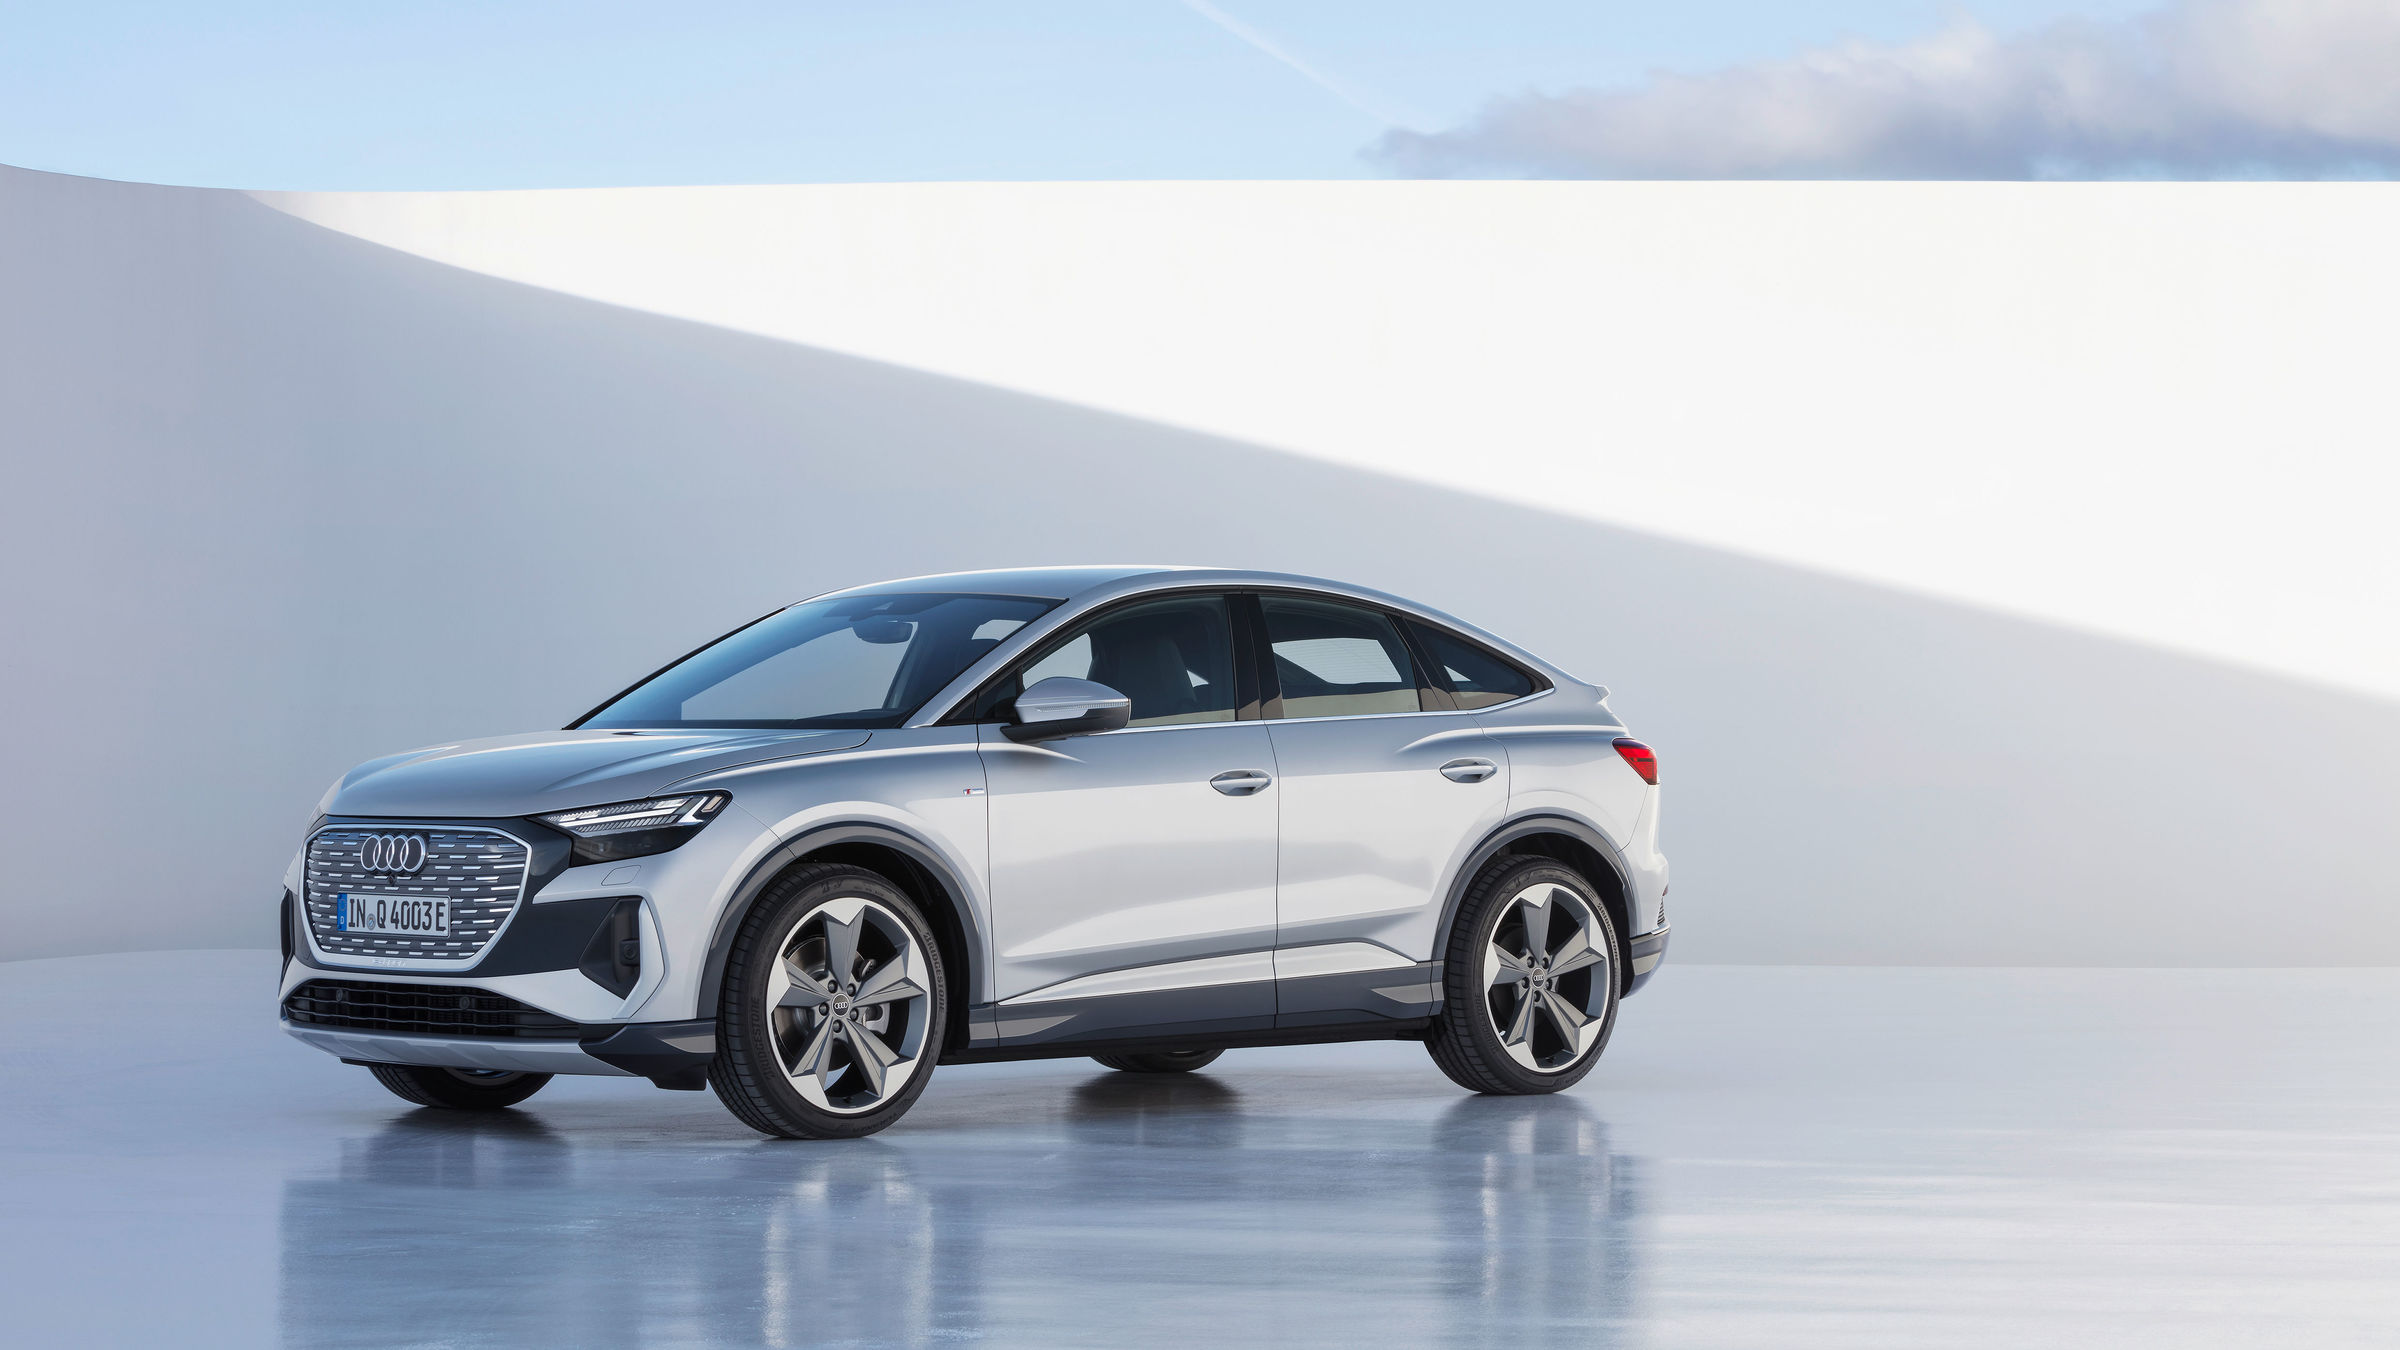 Electric, efficient and emotionally appealing: Audi Q4 e-tron and Q4 Sportback e-tron - Image 4